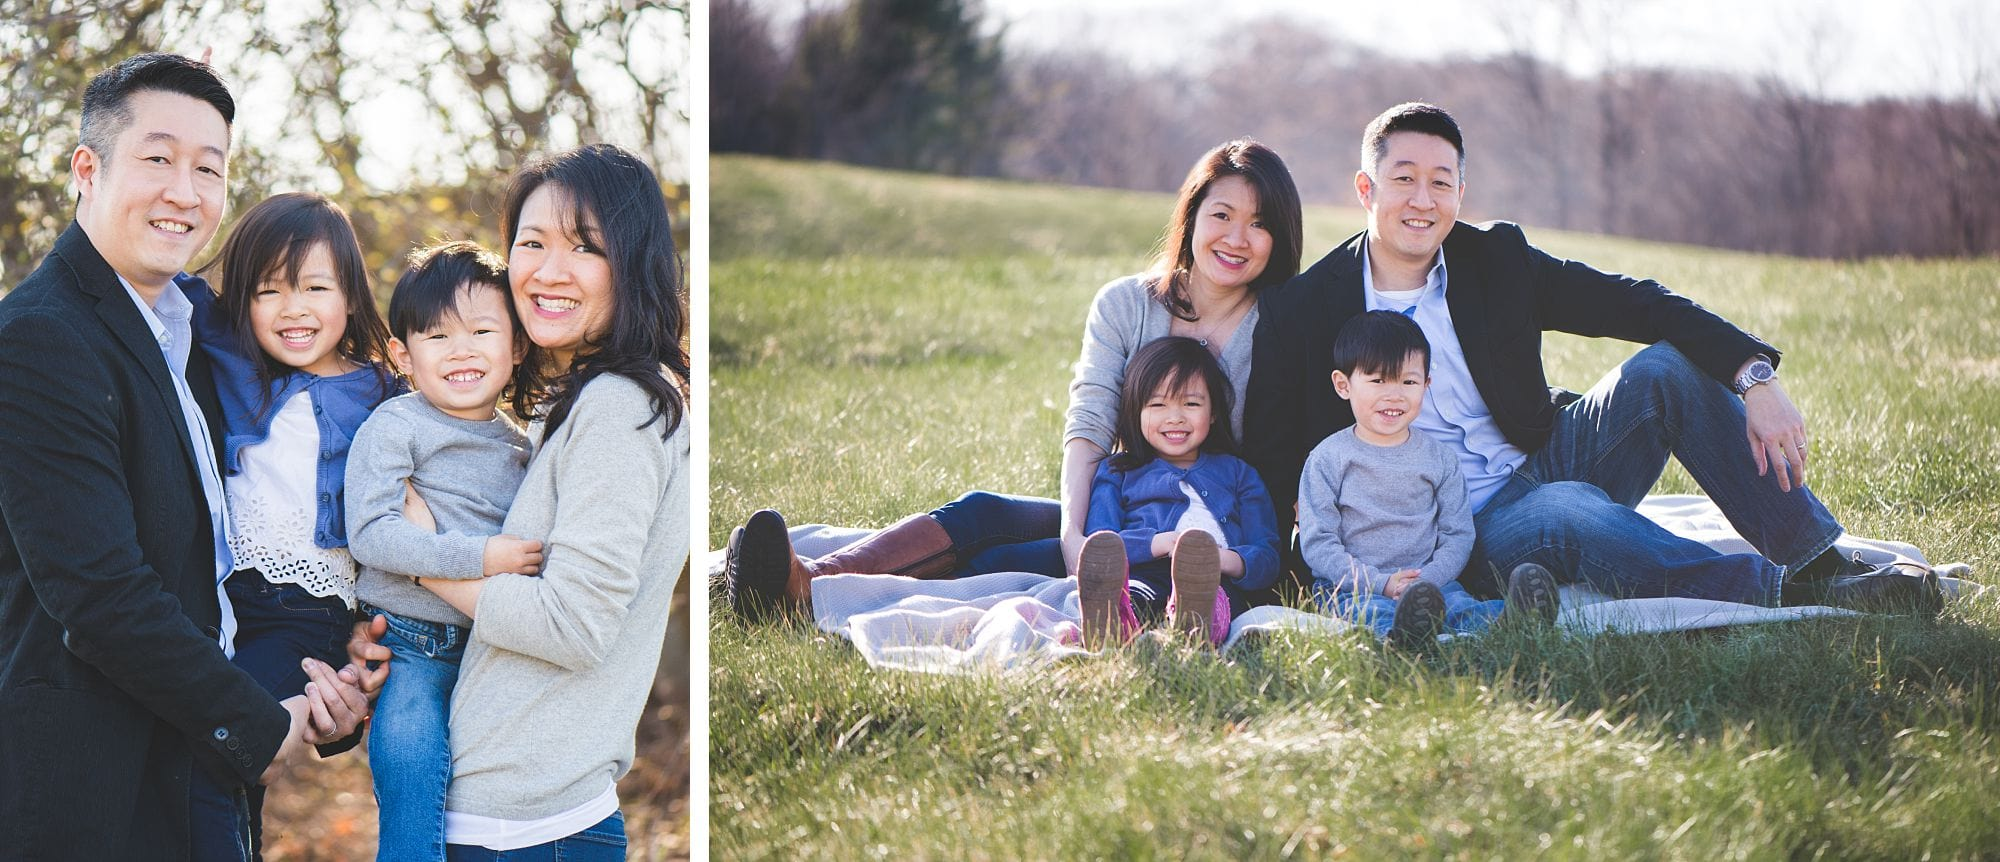 Family photo in a field in Massachusetts with 2 kids